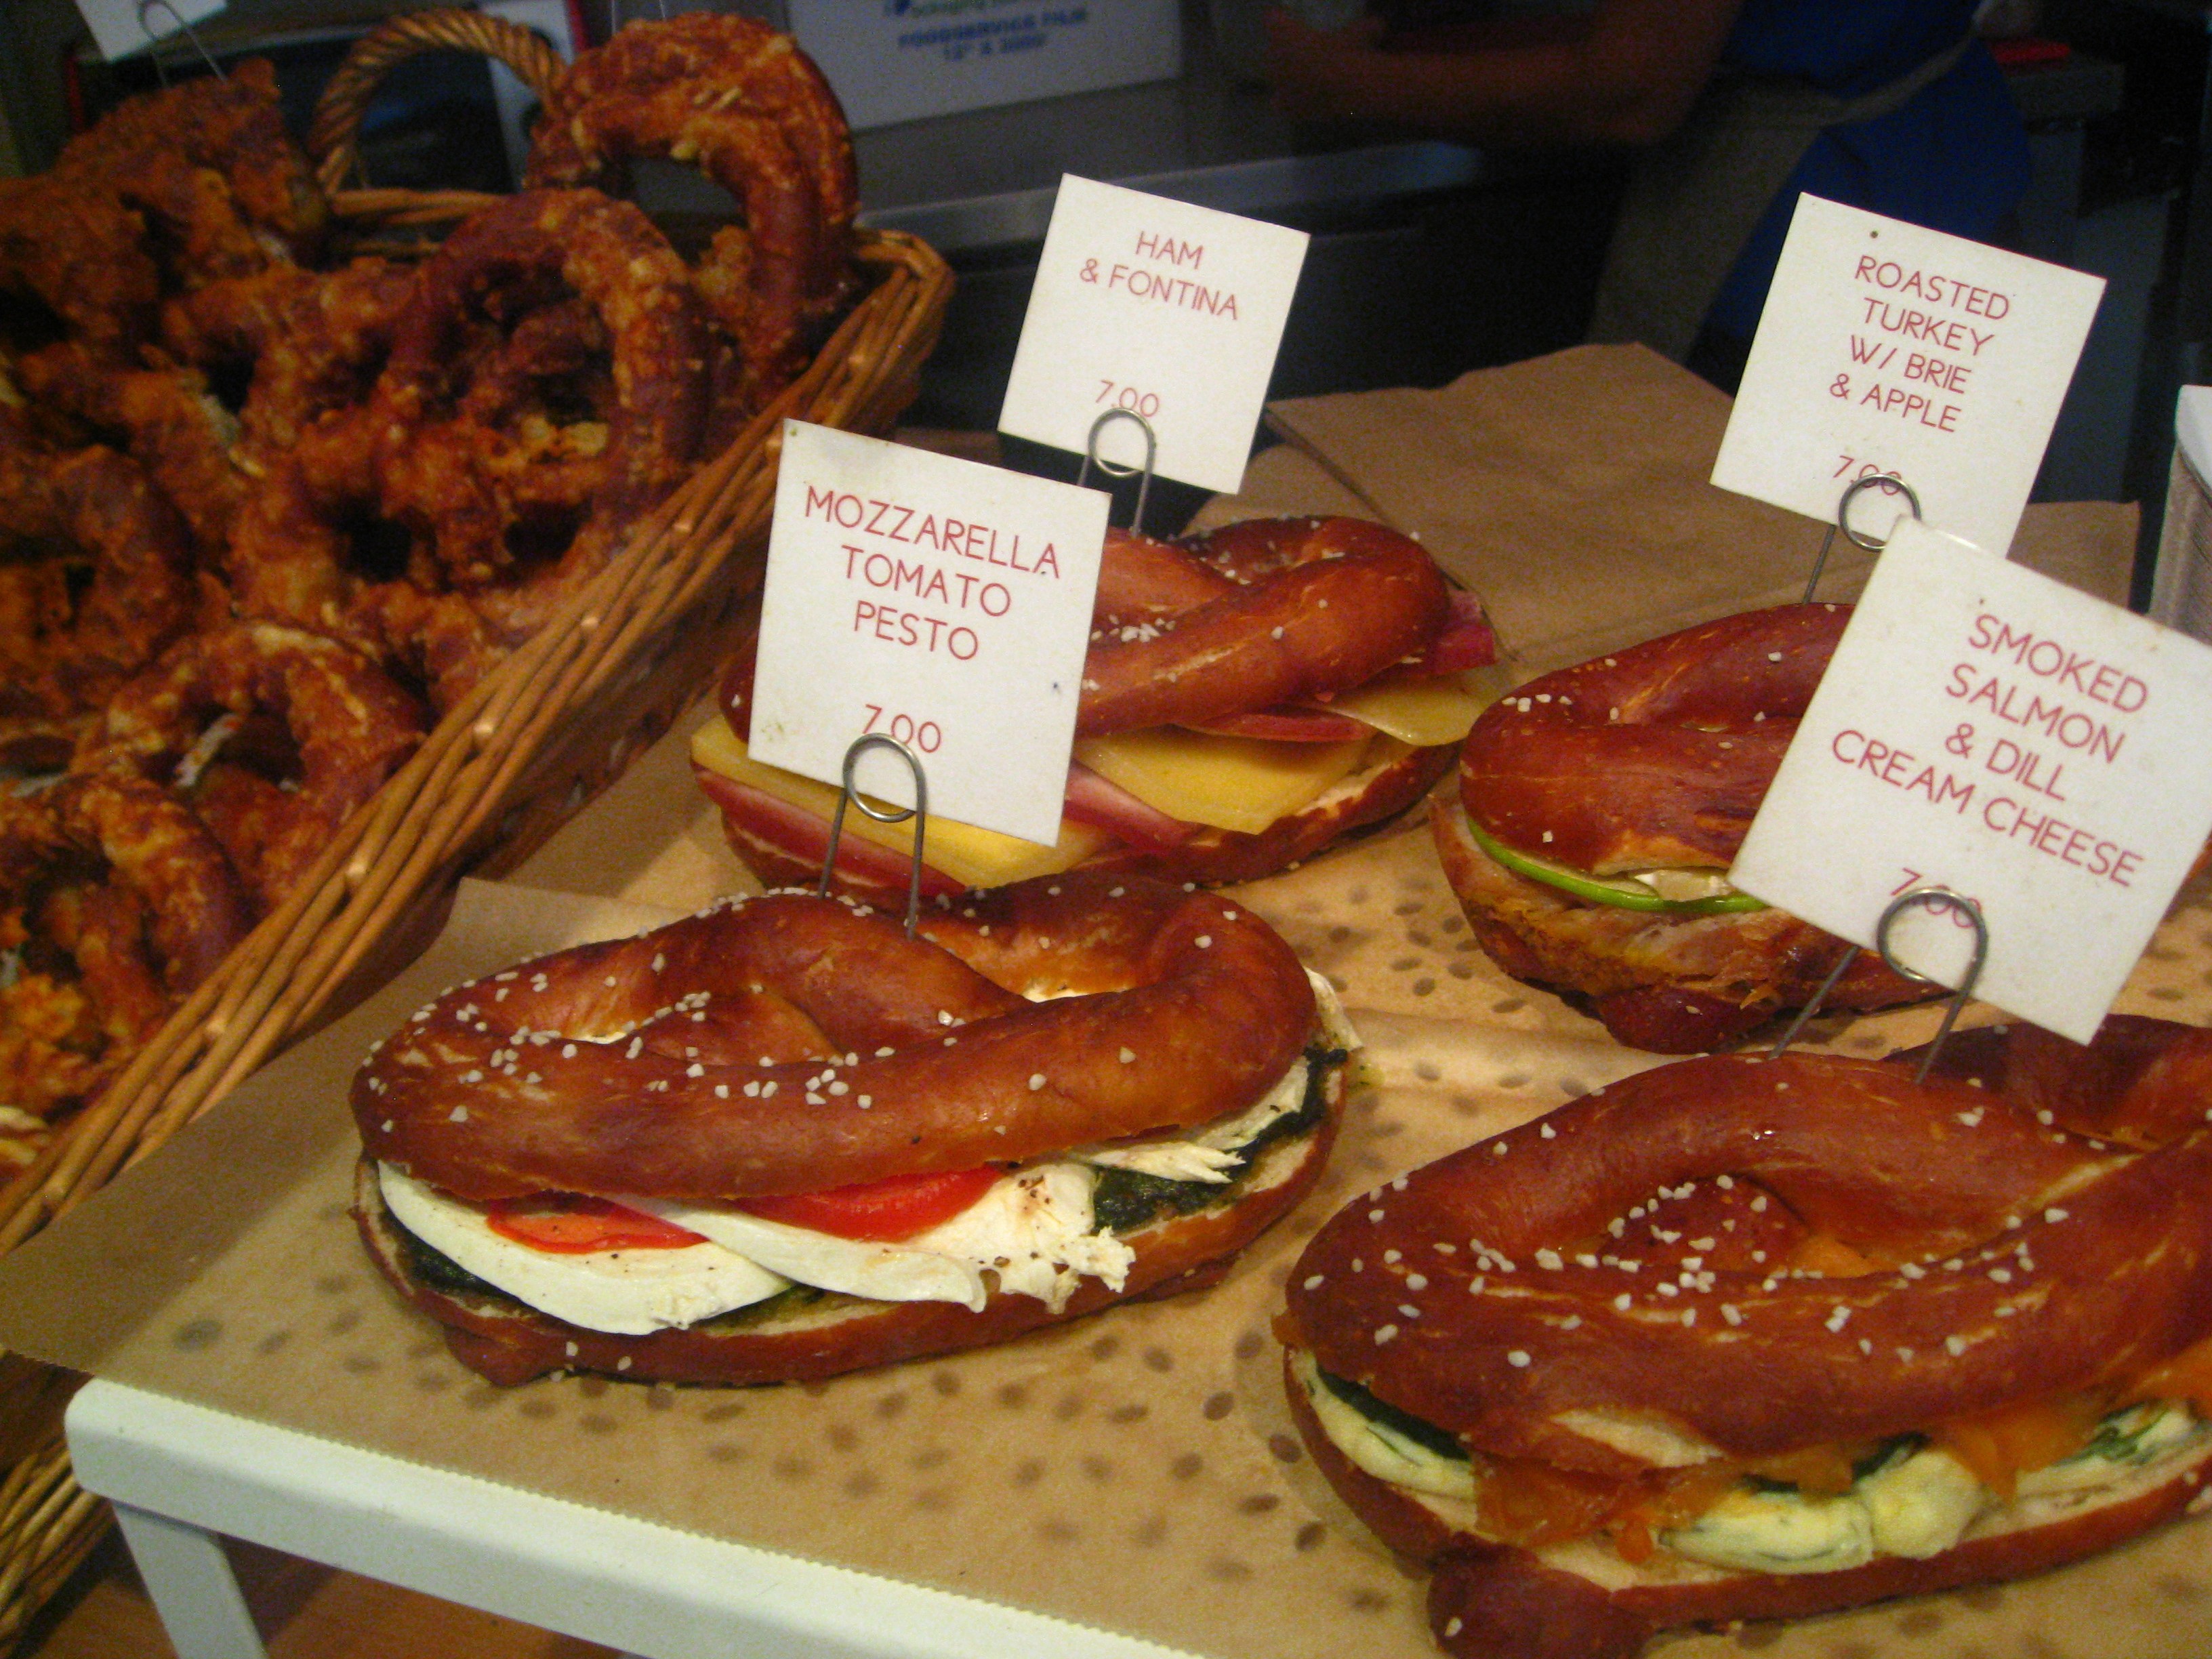 Soft & Salty Snack @Sigmund Pretzelshop | 8.ate@eight